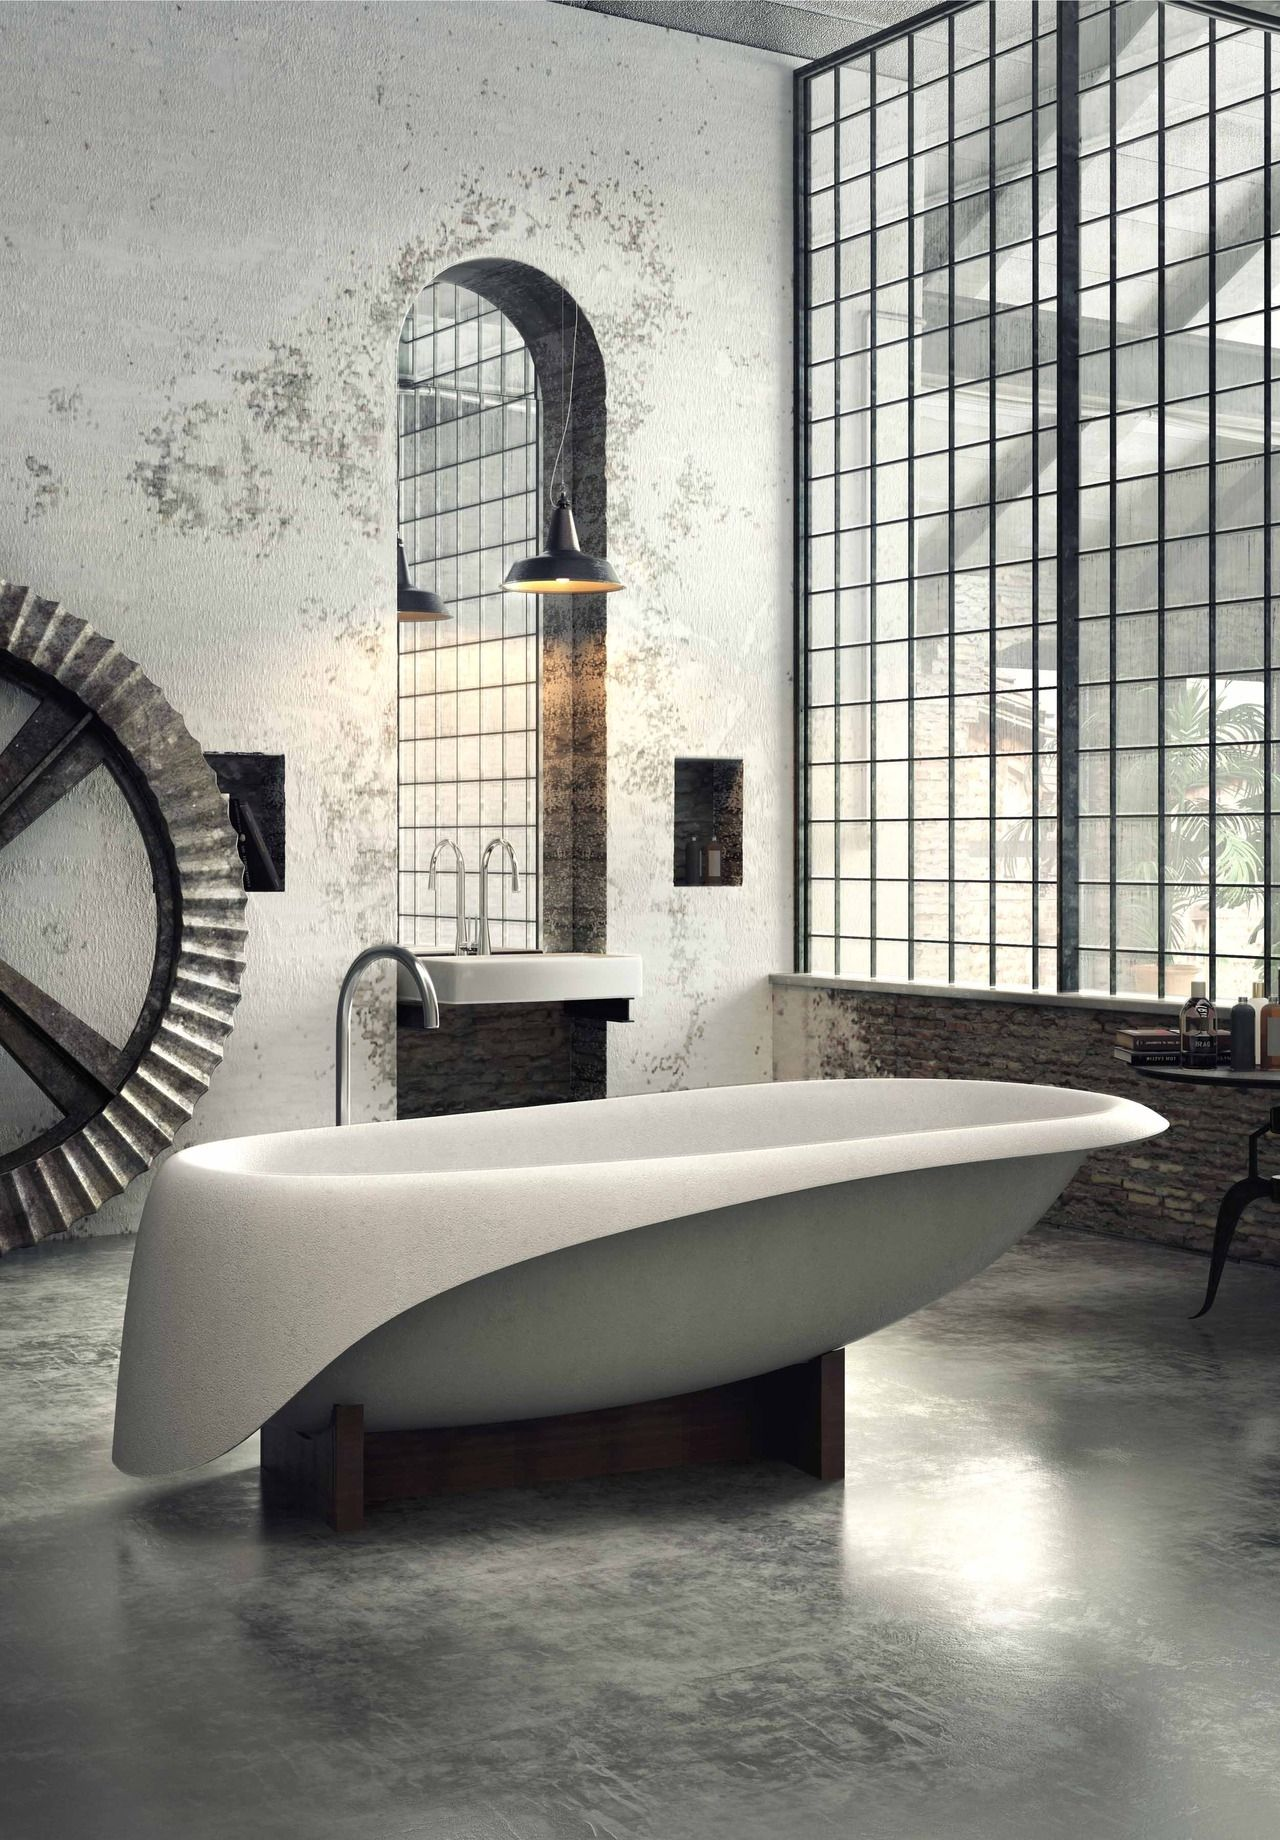 30 Inspiring Industrial Bathroom Ideas | Pinterest | Industrial ...